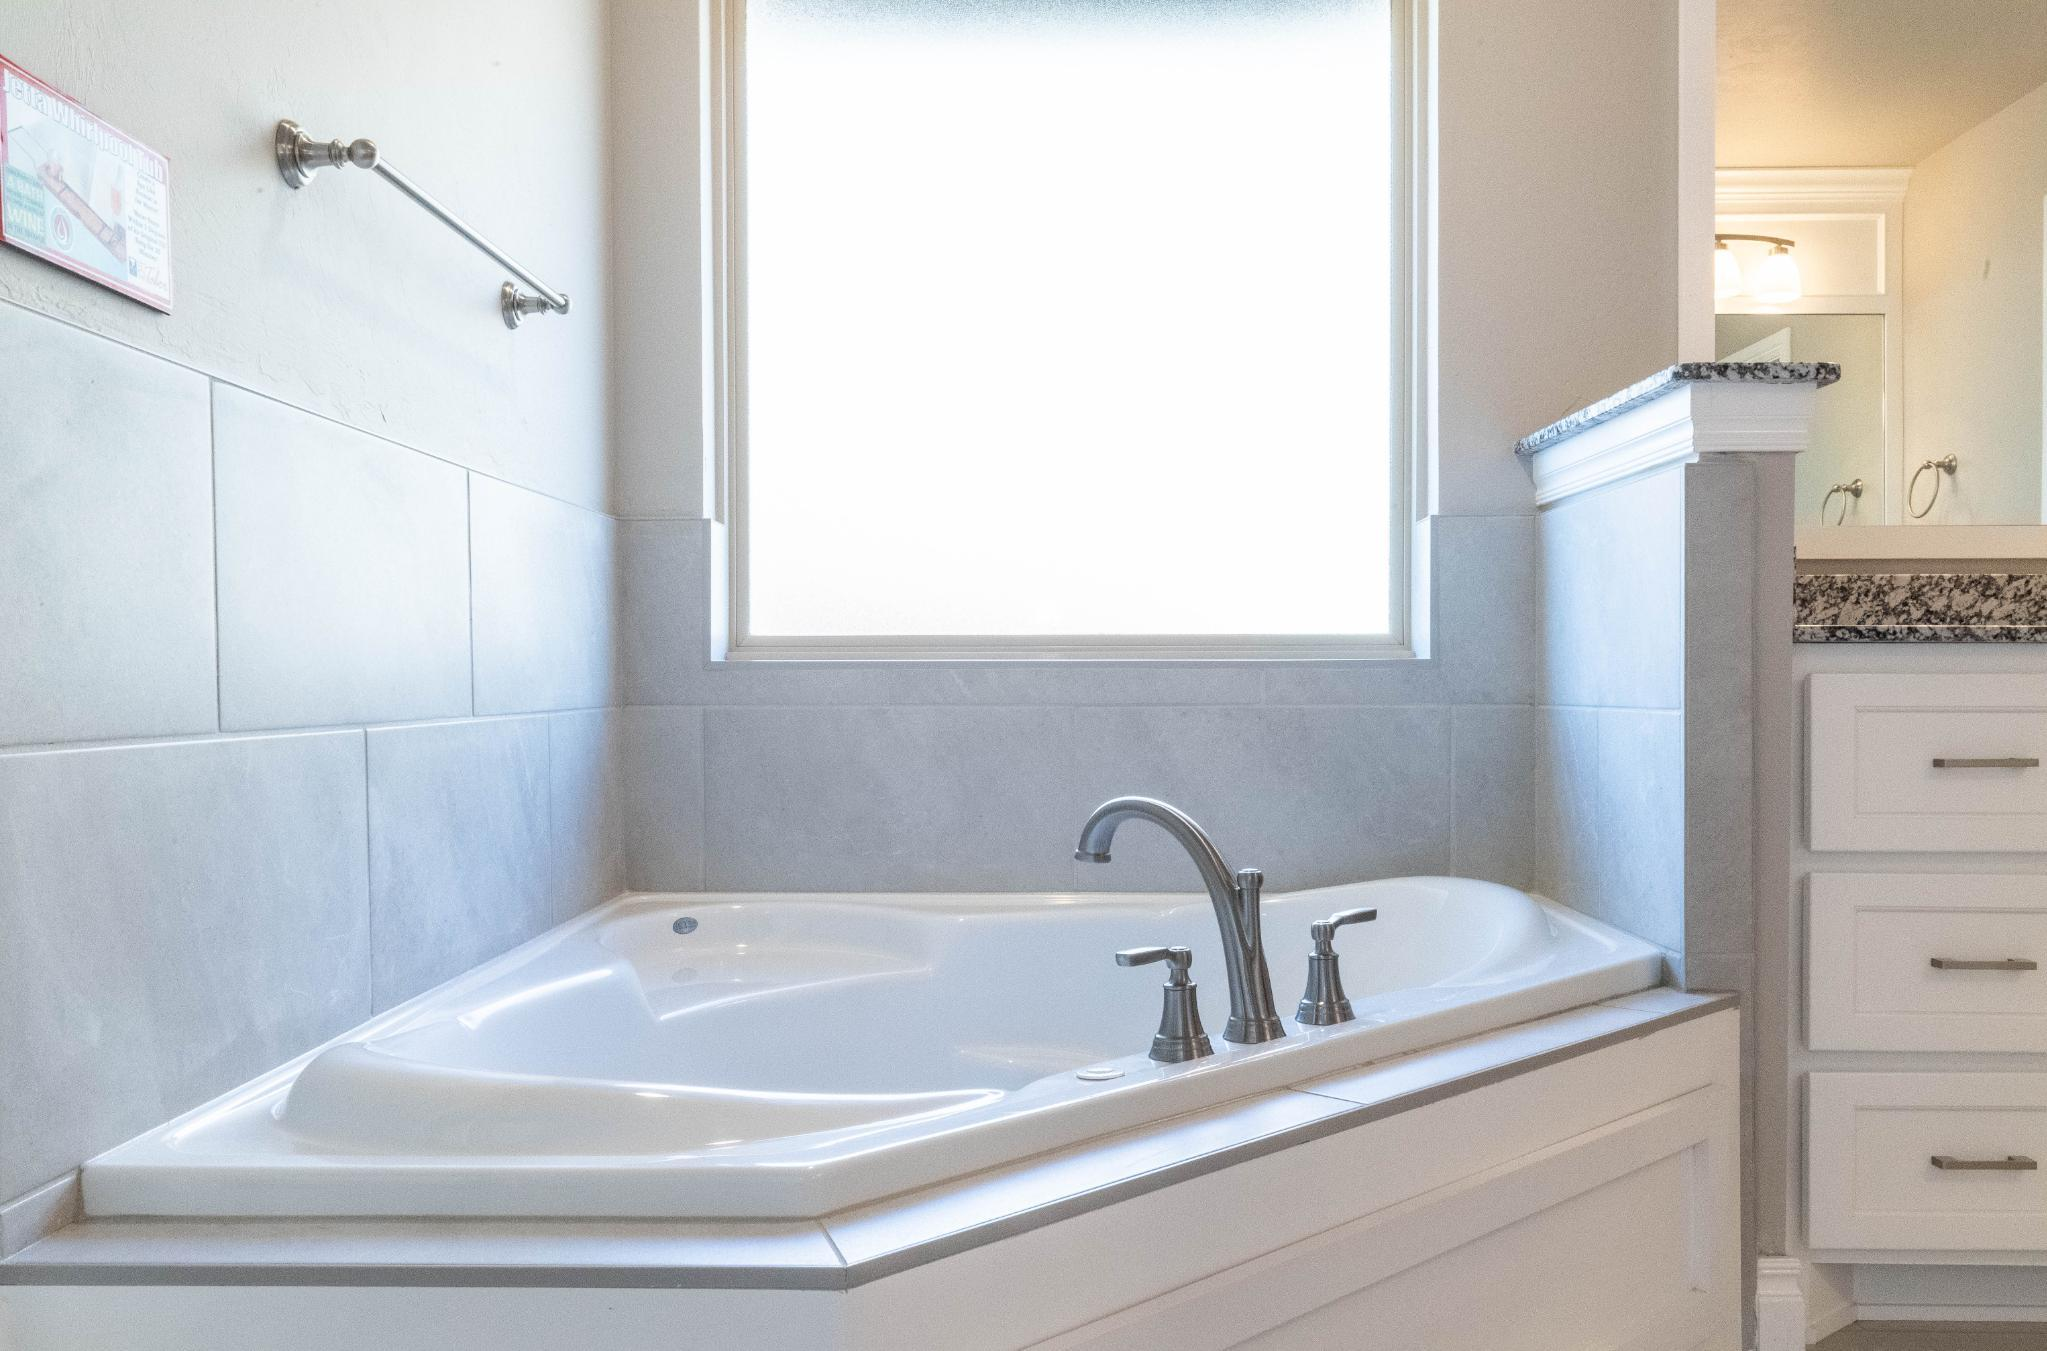 Bathroom featured in the Cornerstone Half Bath By Homes By Taber in Oklahoma City, OK